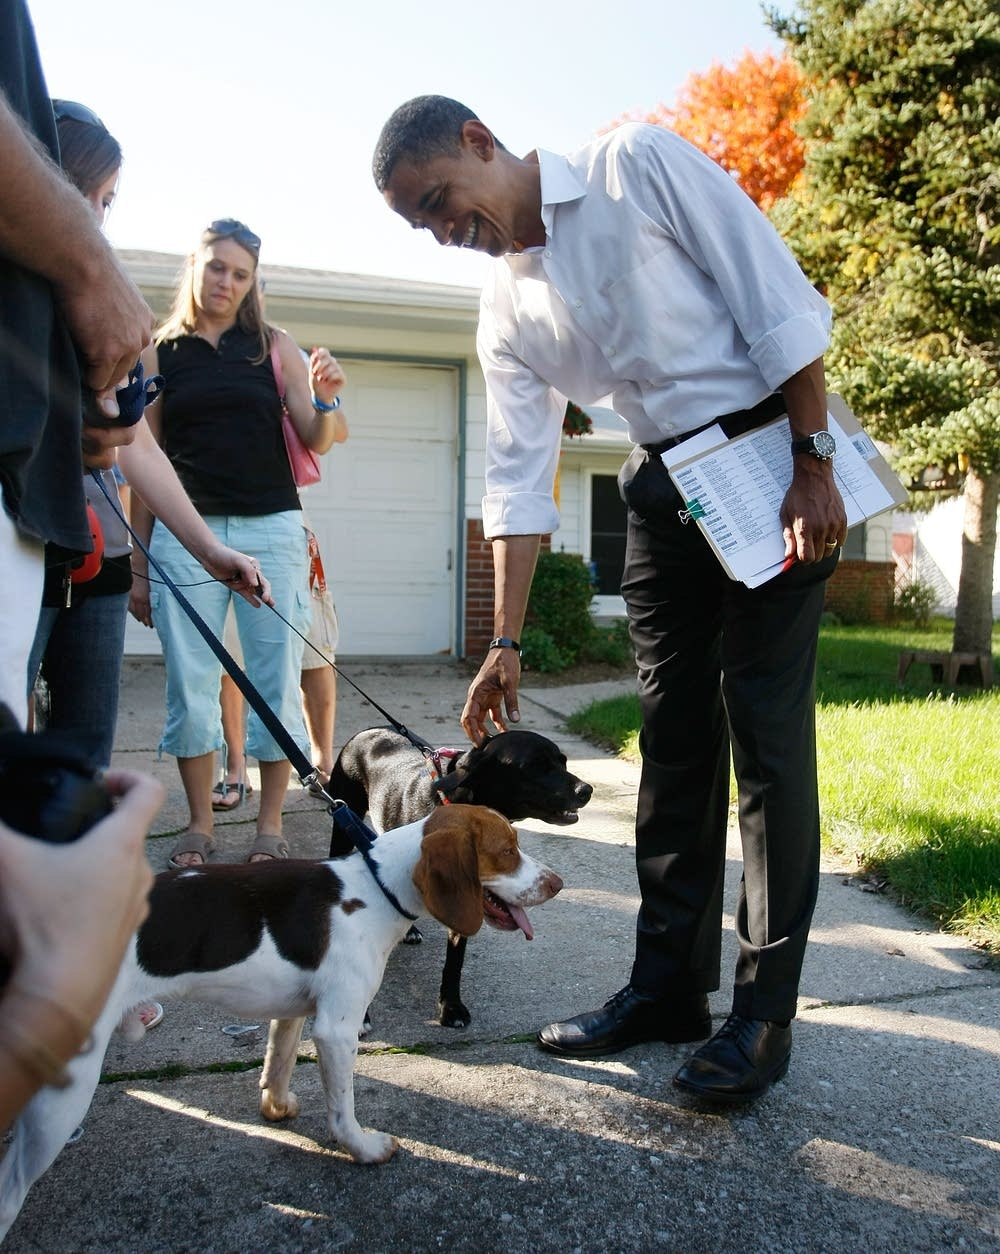 Obama greets some dogs on the campaign trail